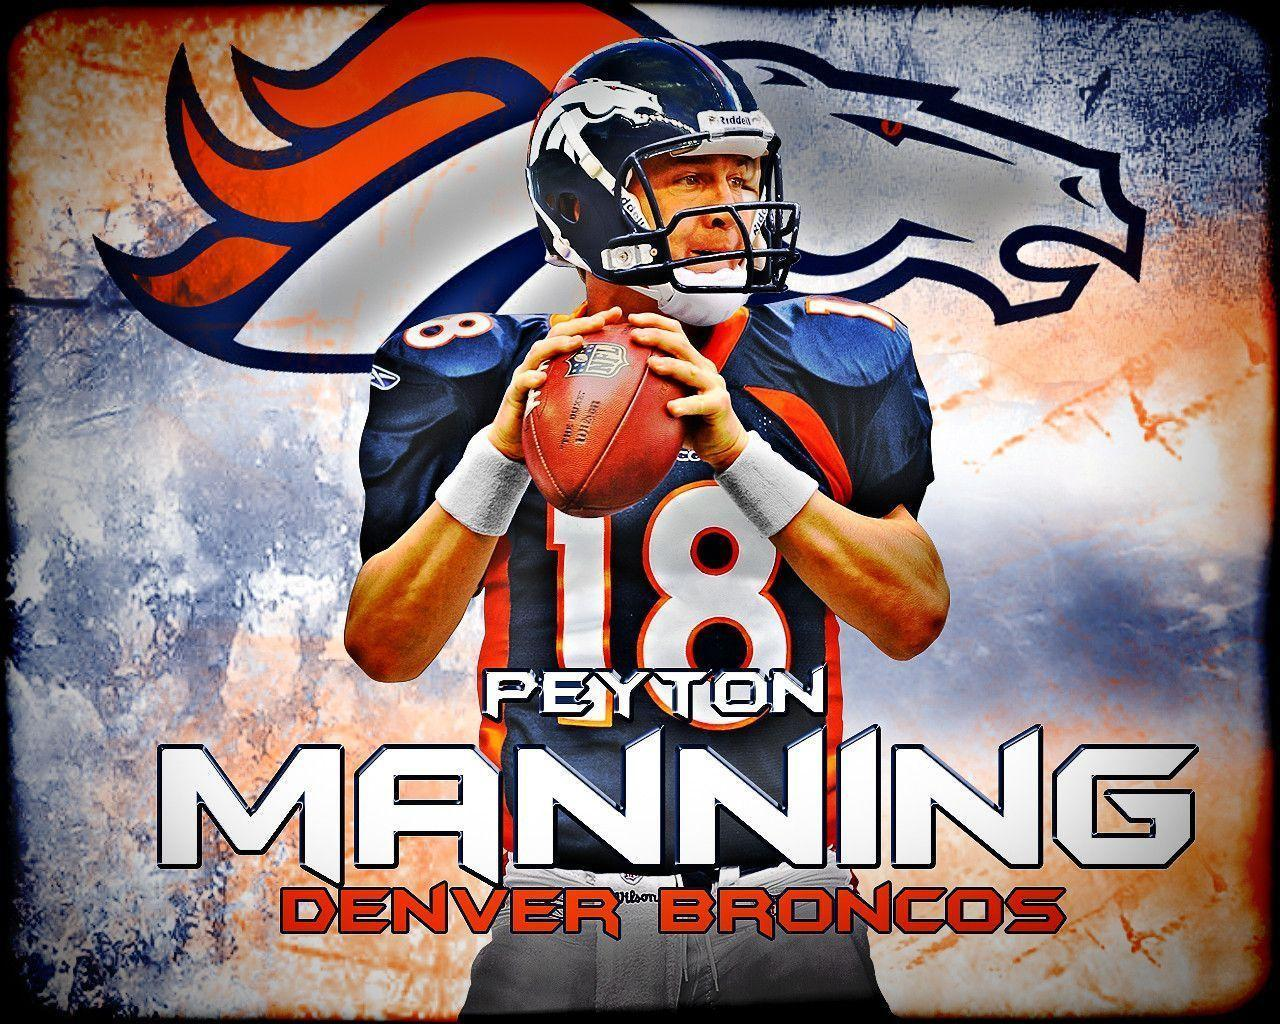 Denver Broncos Wallpapers 2013 Image & Pictures